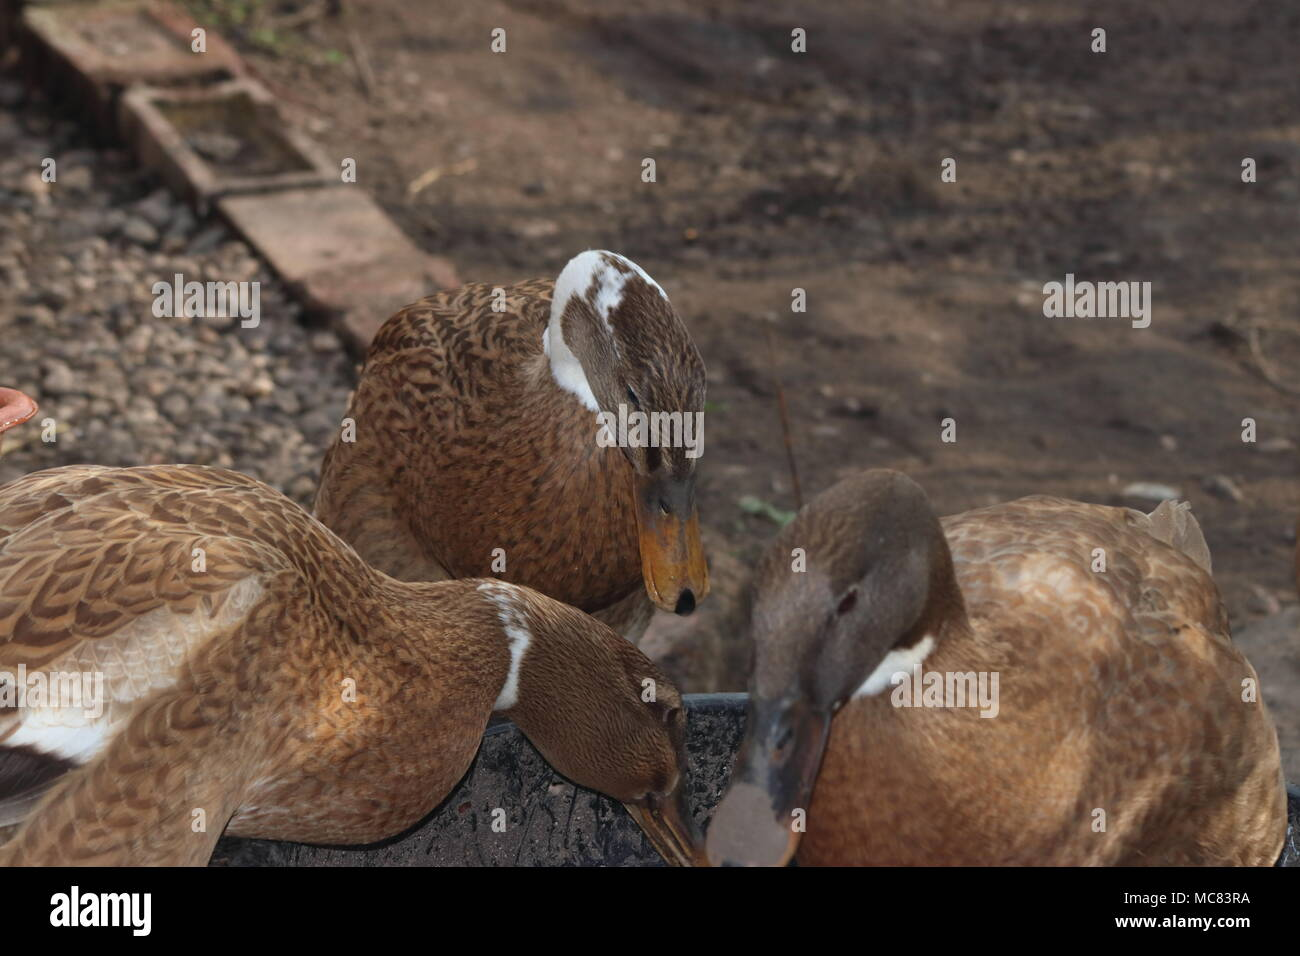 female indiian runner ducks eating food in garden Anas platyrhynchos domesticus - Stock Image